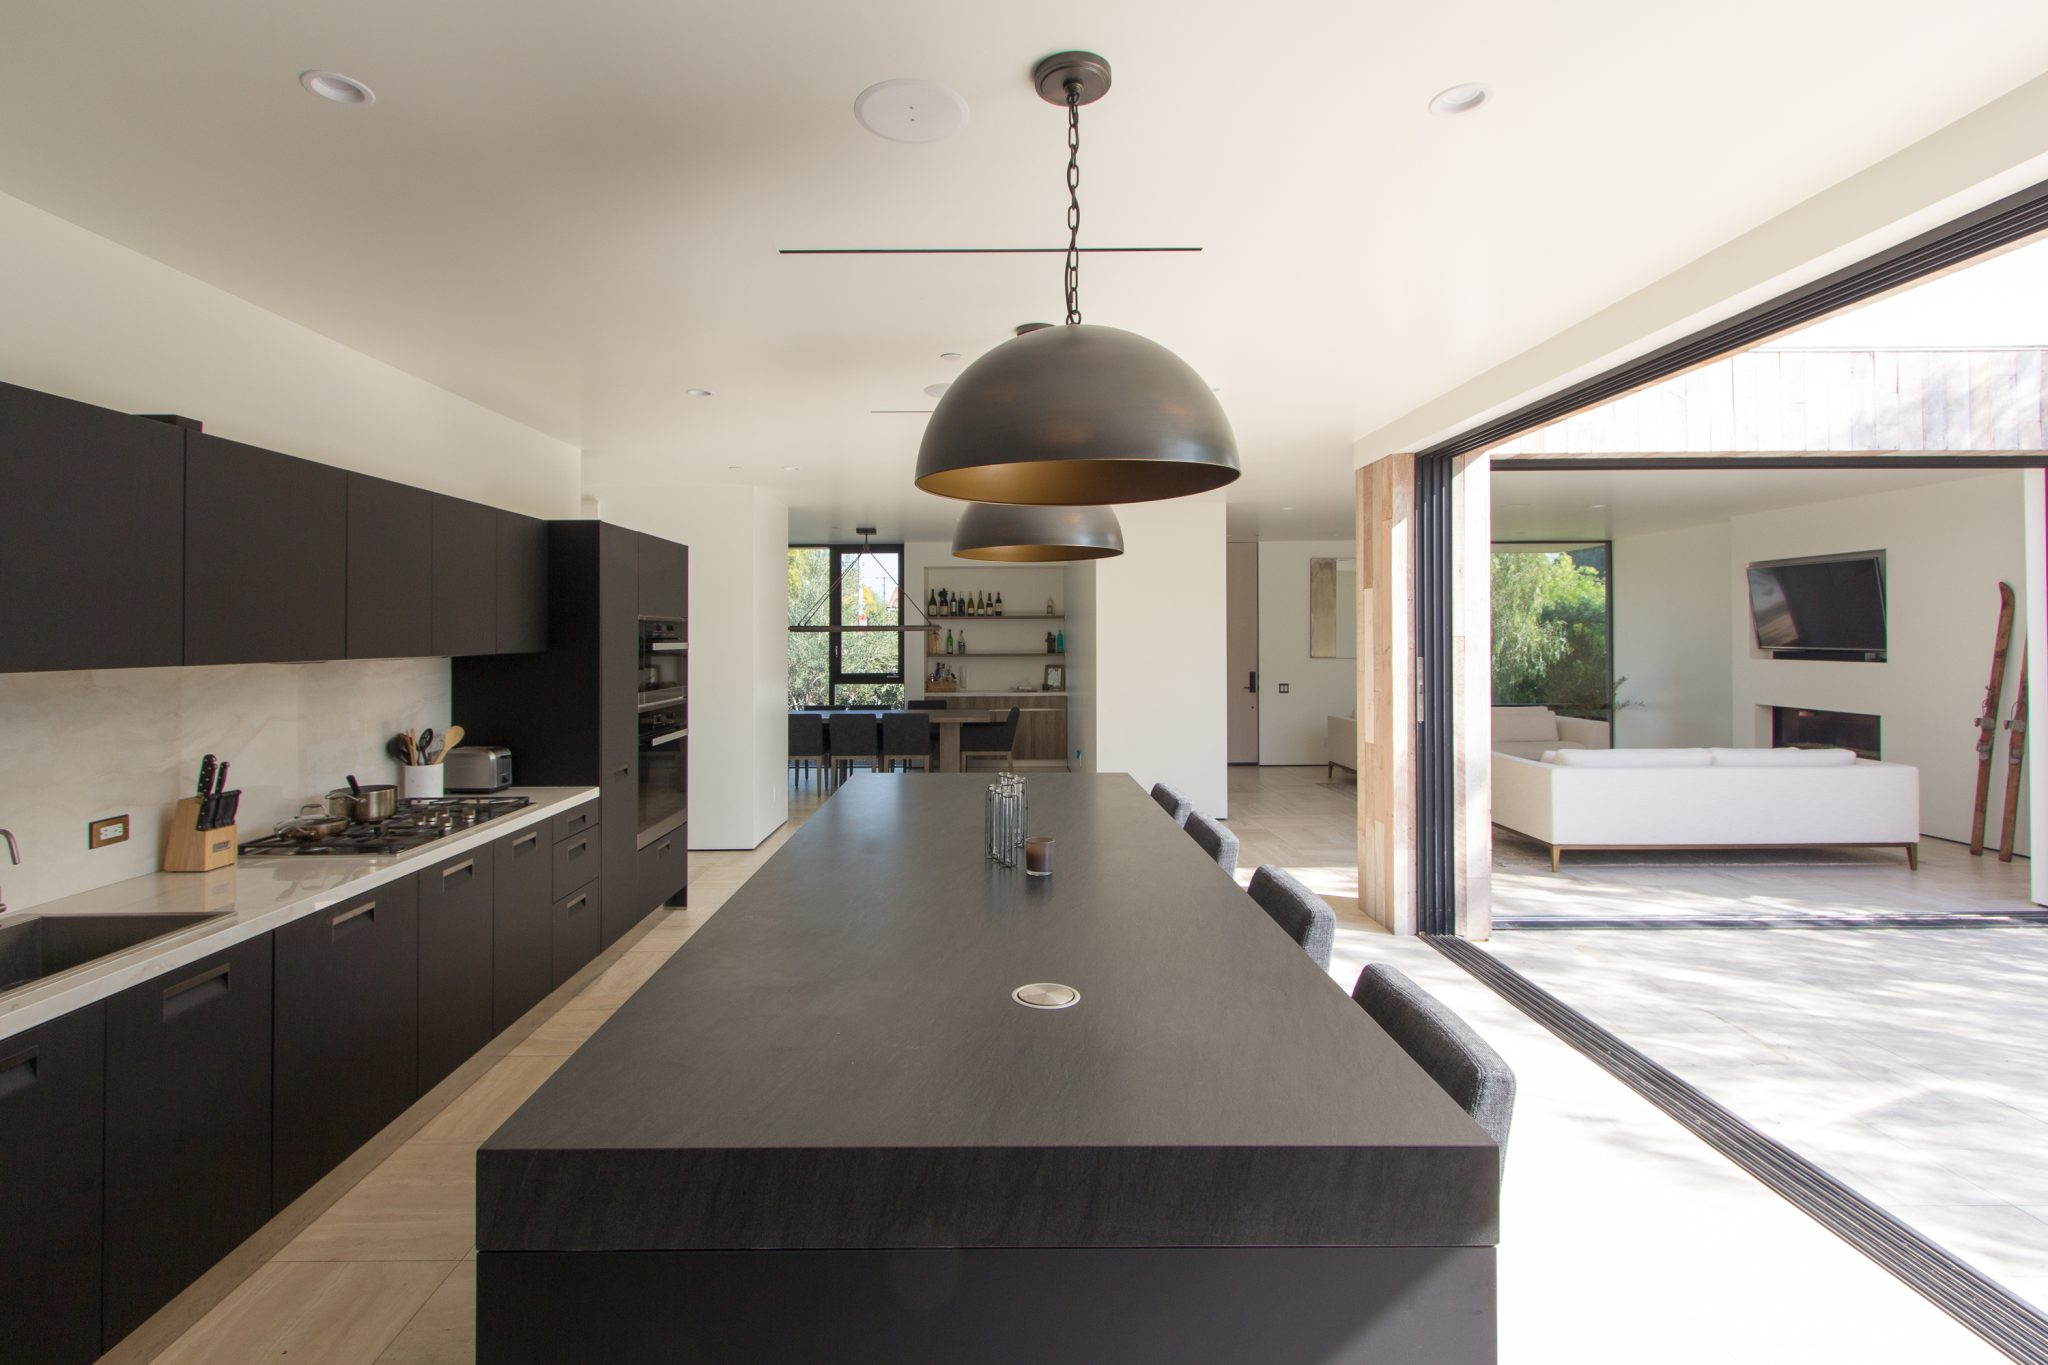 orlando interior architecture design kitchen